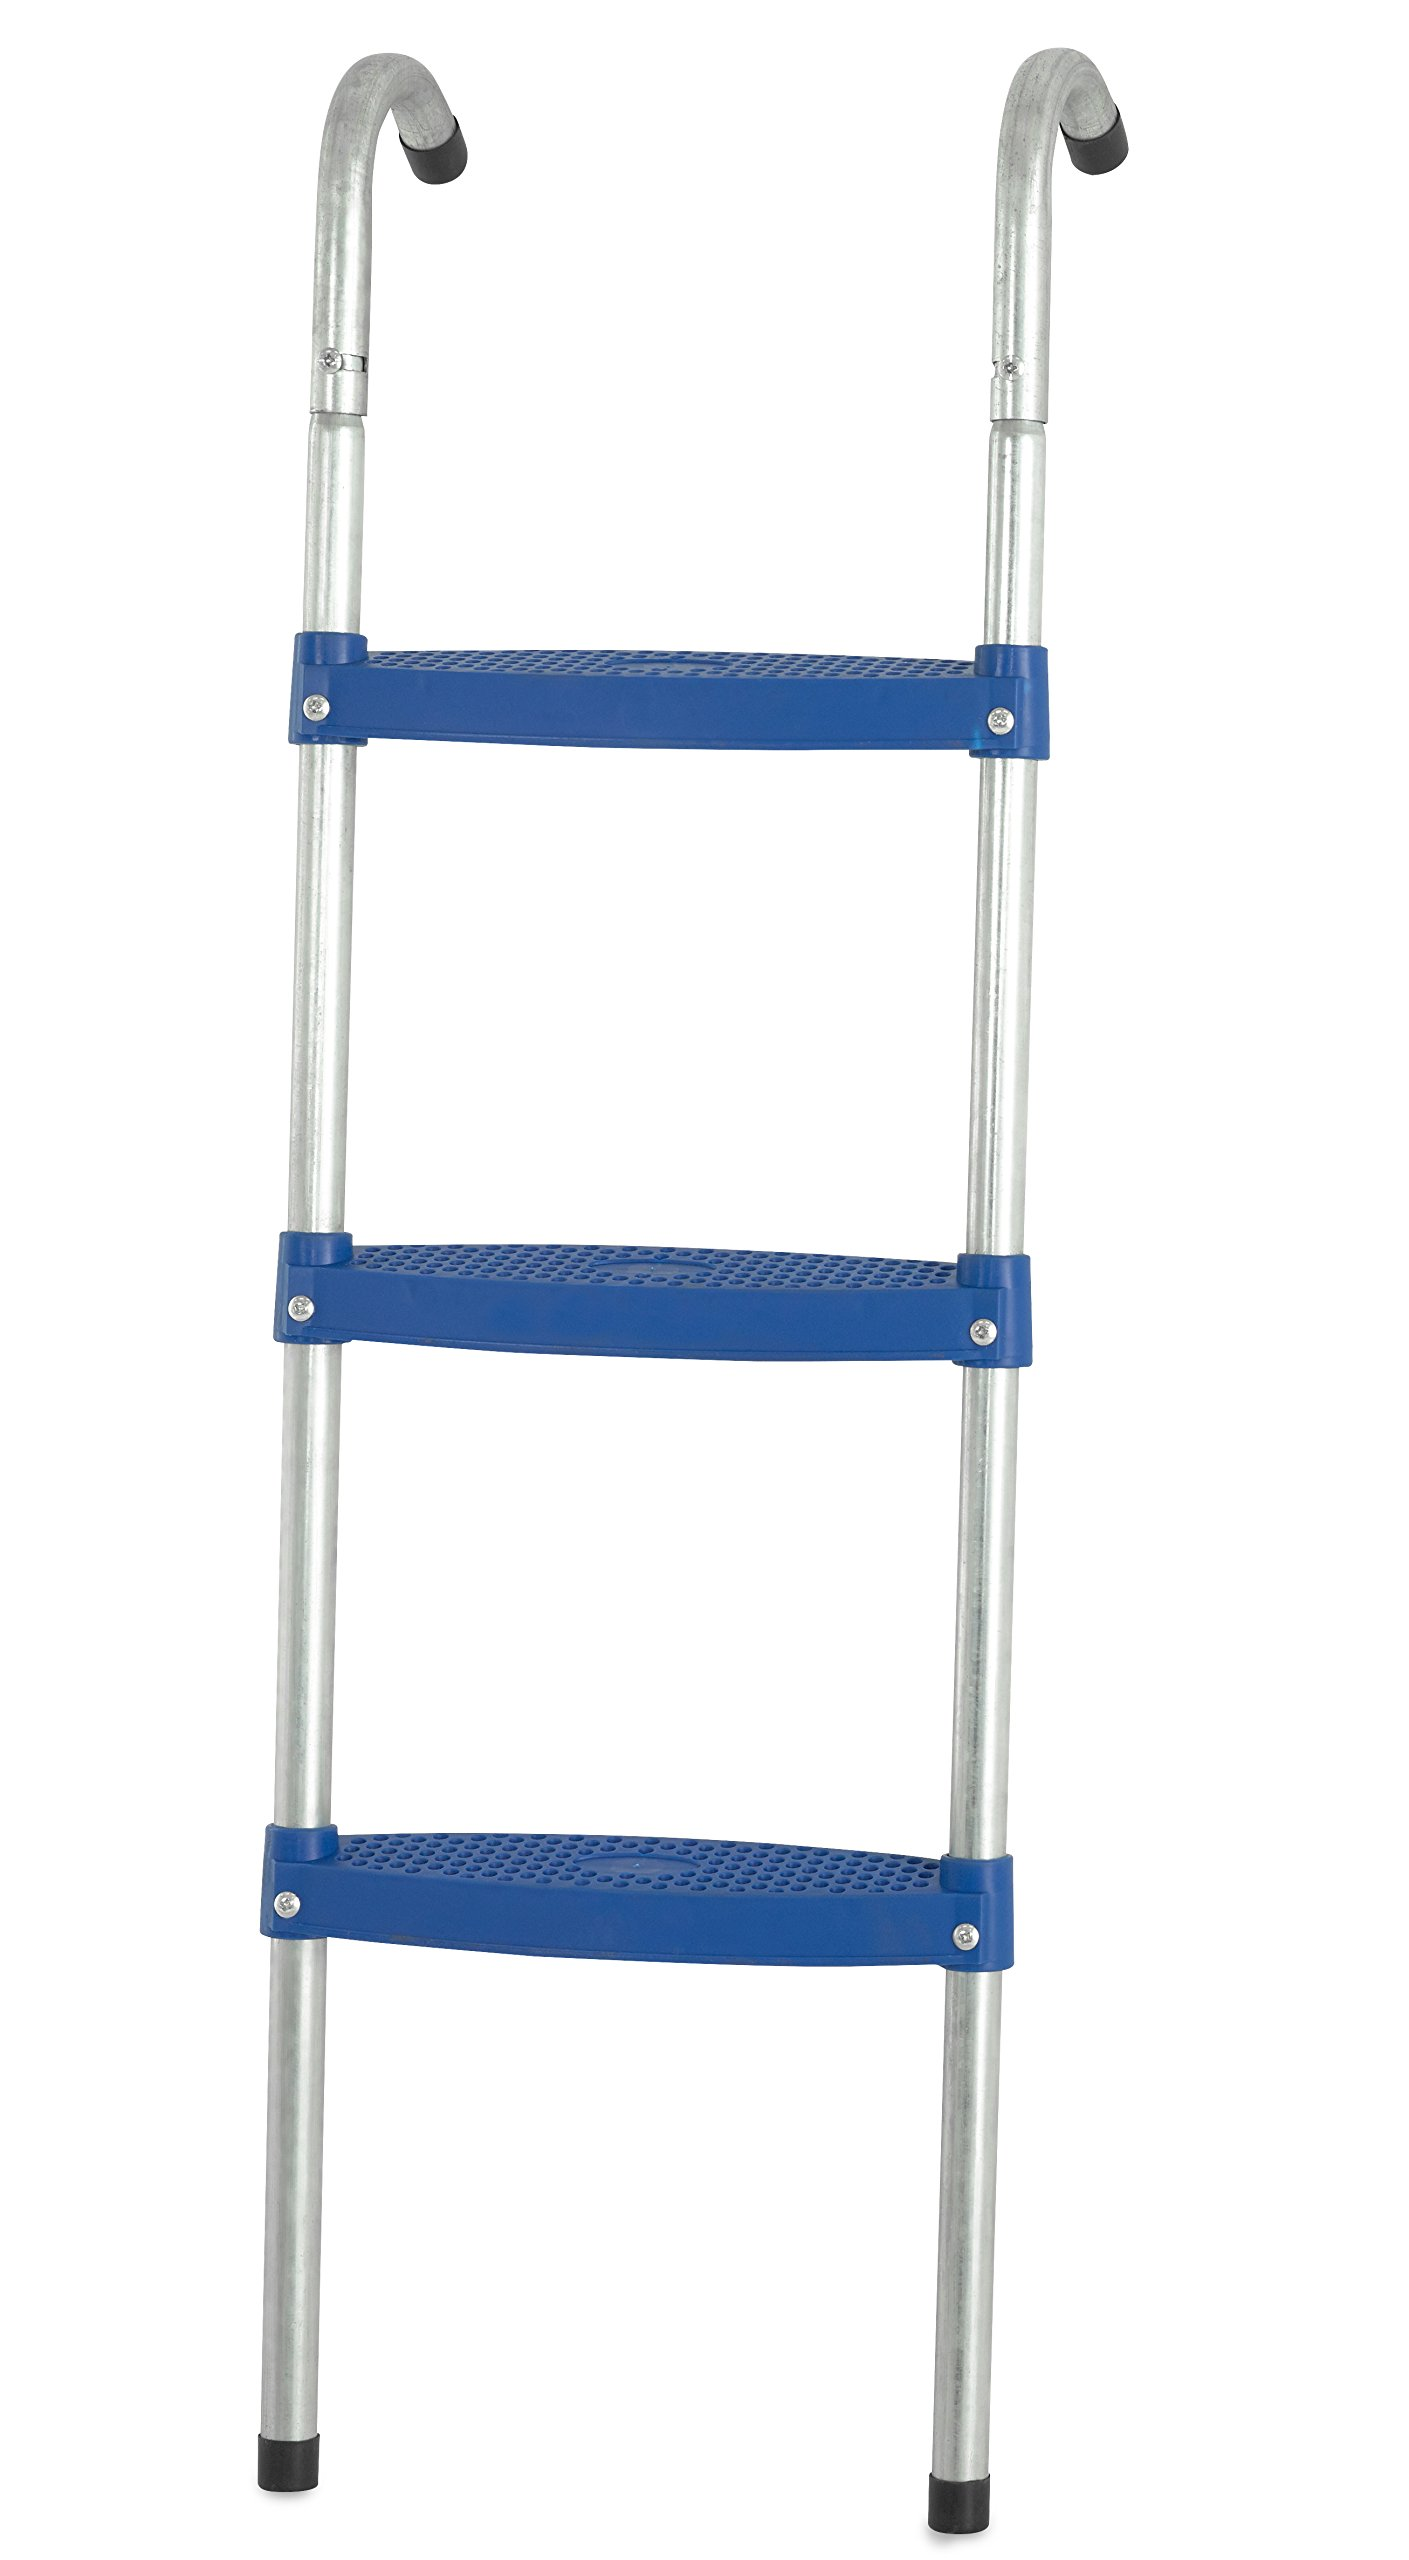 Upper Bounce UBLGFS3-42 Ladder 3 Steps Foldable Trampoline, Green, 42'' by Upper Bounce